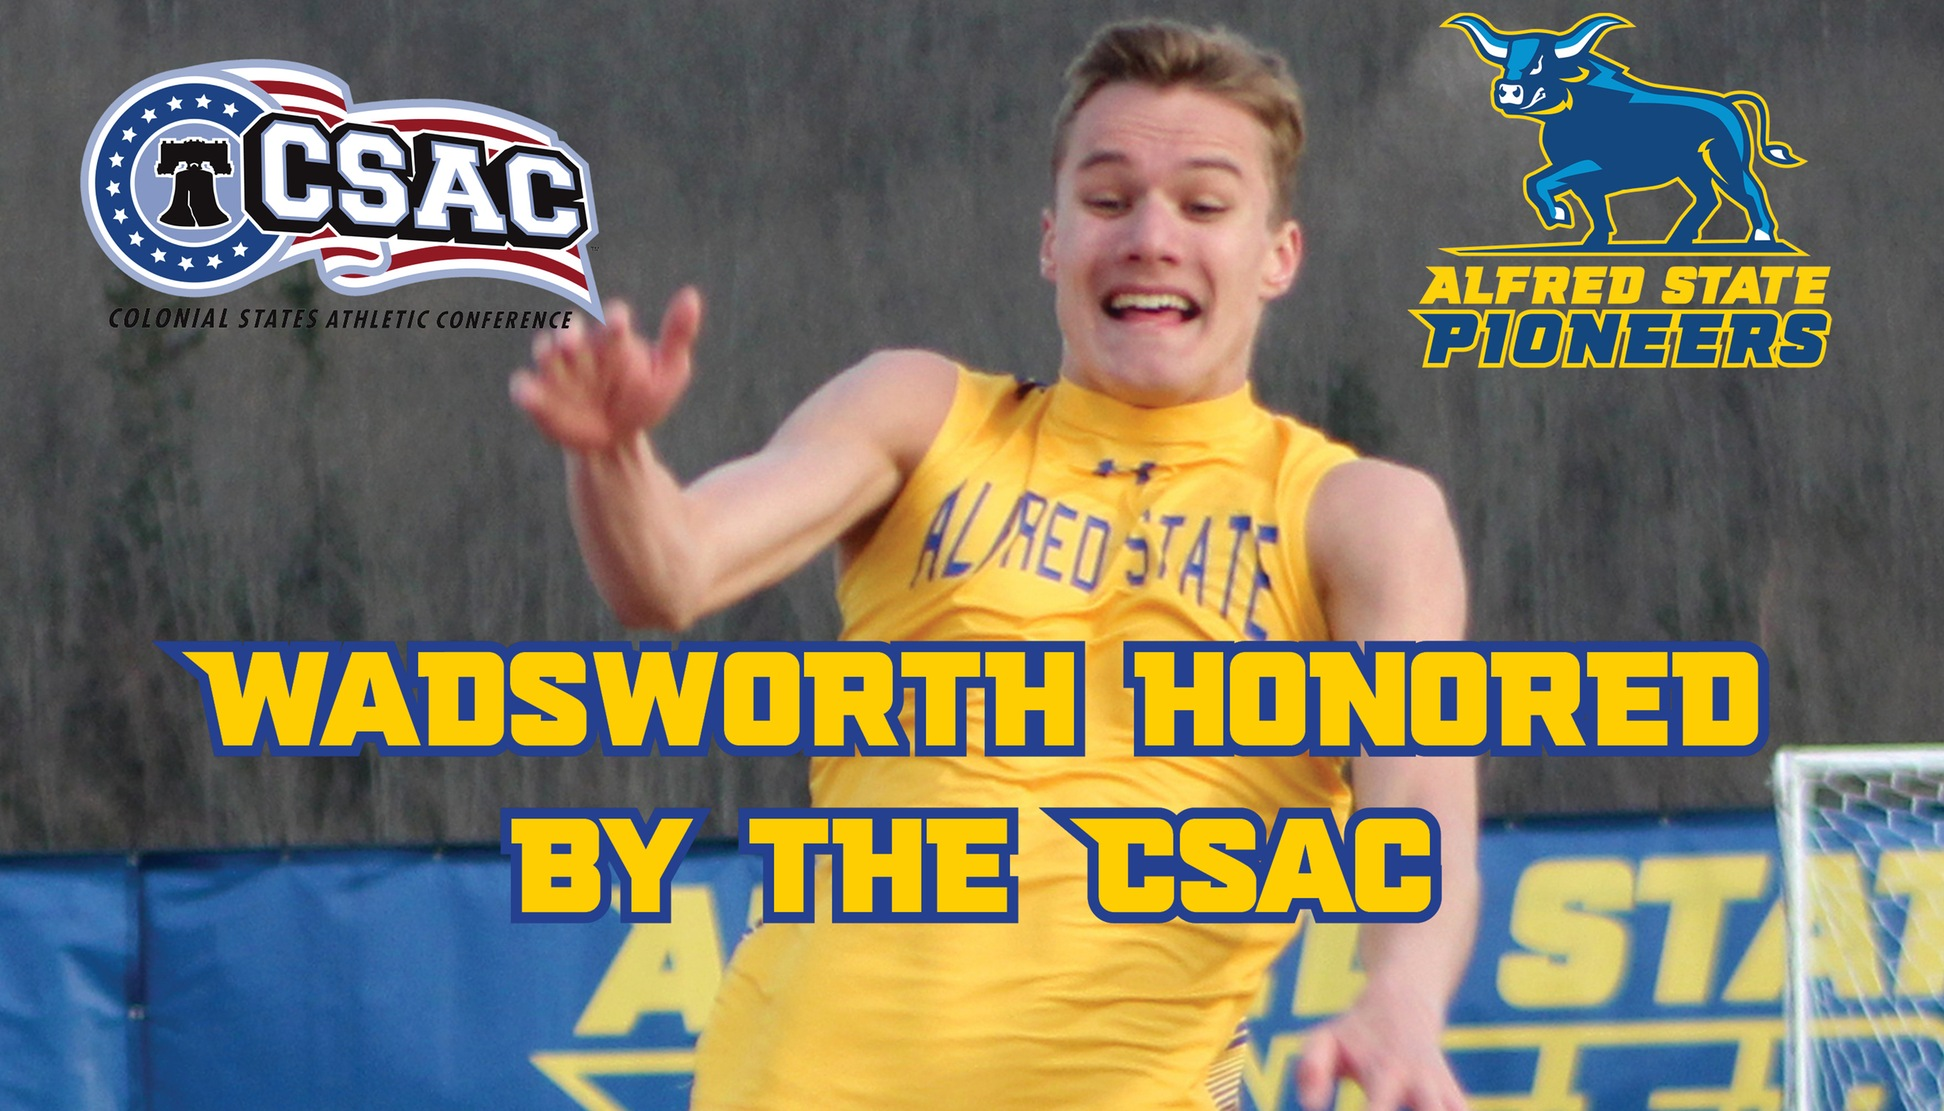 Jacob Wadsworth Named Track Athlete of the Week by the CSAC